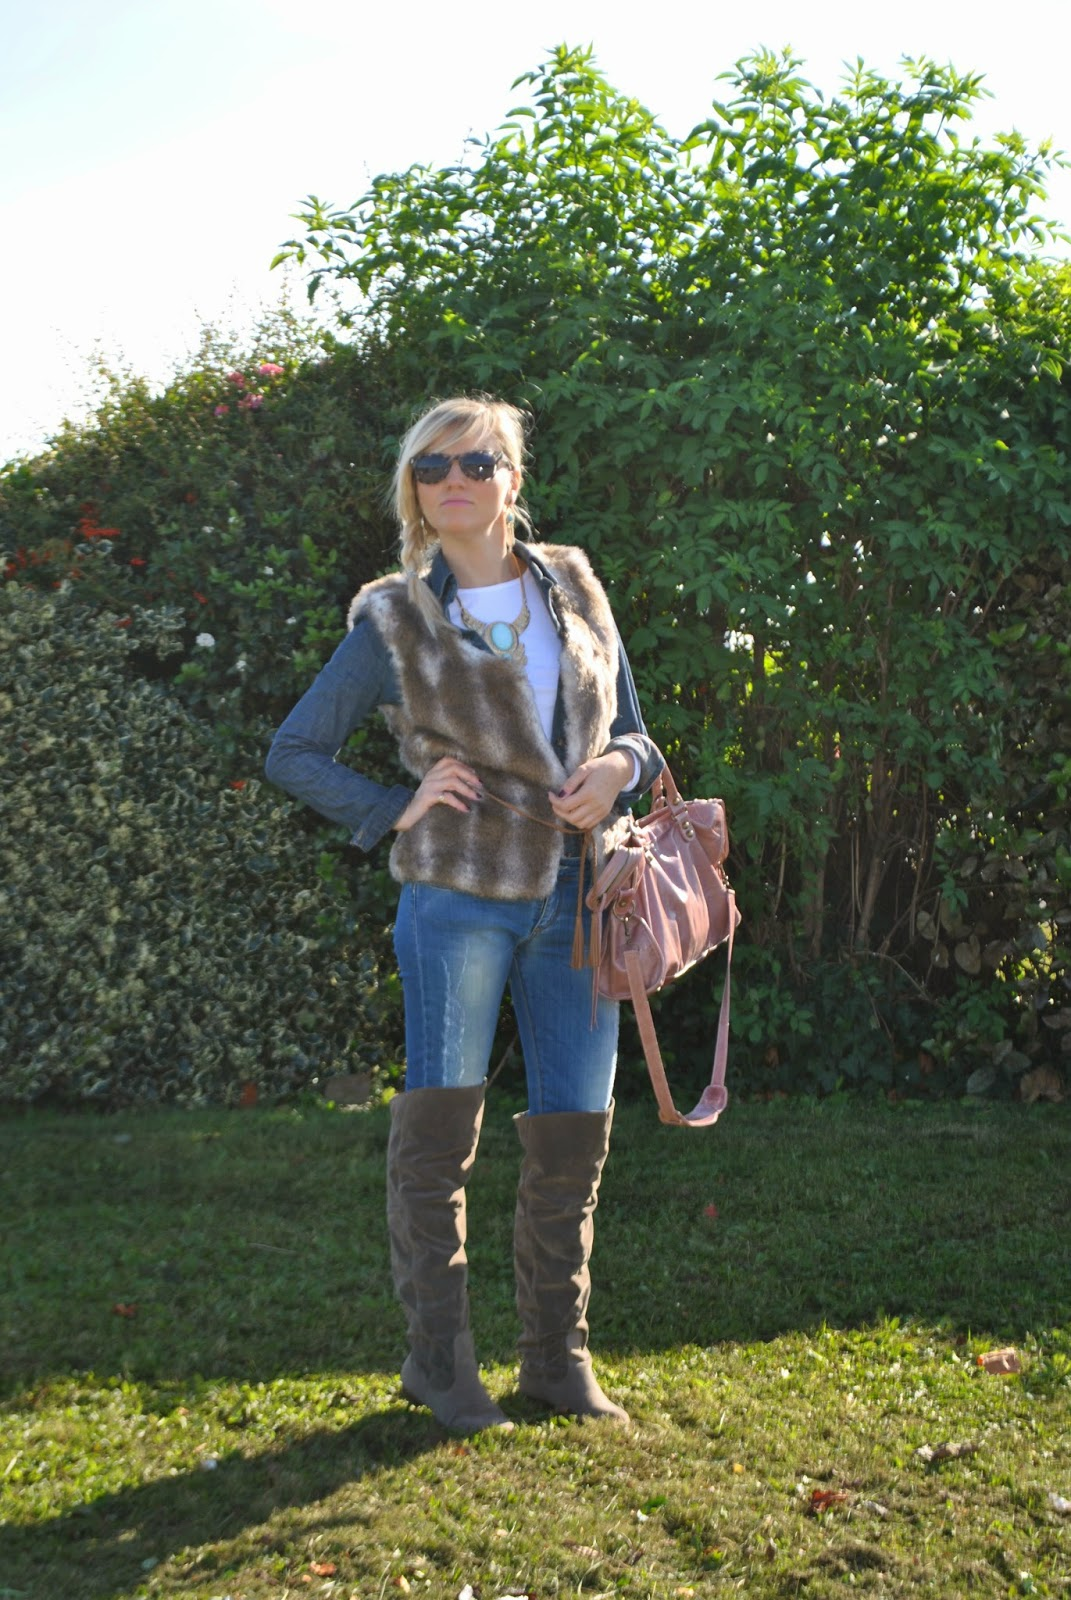 outfit camicia in denim gilet in ecopelliccia borsa balenciaga faux fur vest denim shirt cuissardes collana majique london jewels orecchini majique london fashion blogger italiane fashion bloggers italy fashion blogger bionde ragazze bionde outfit autunnali autumnal outfits mariafelicia magno mariafelicia magno fashion blogger colorblock by felym